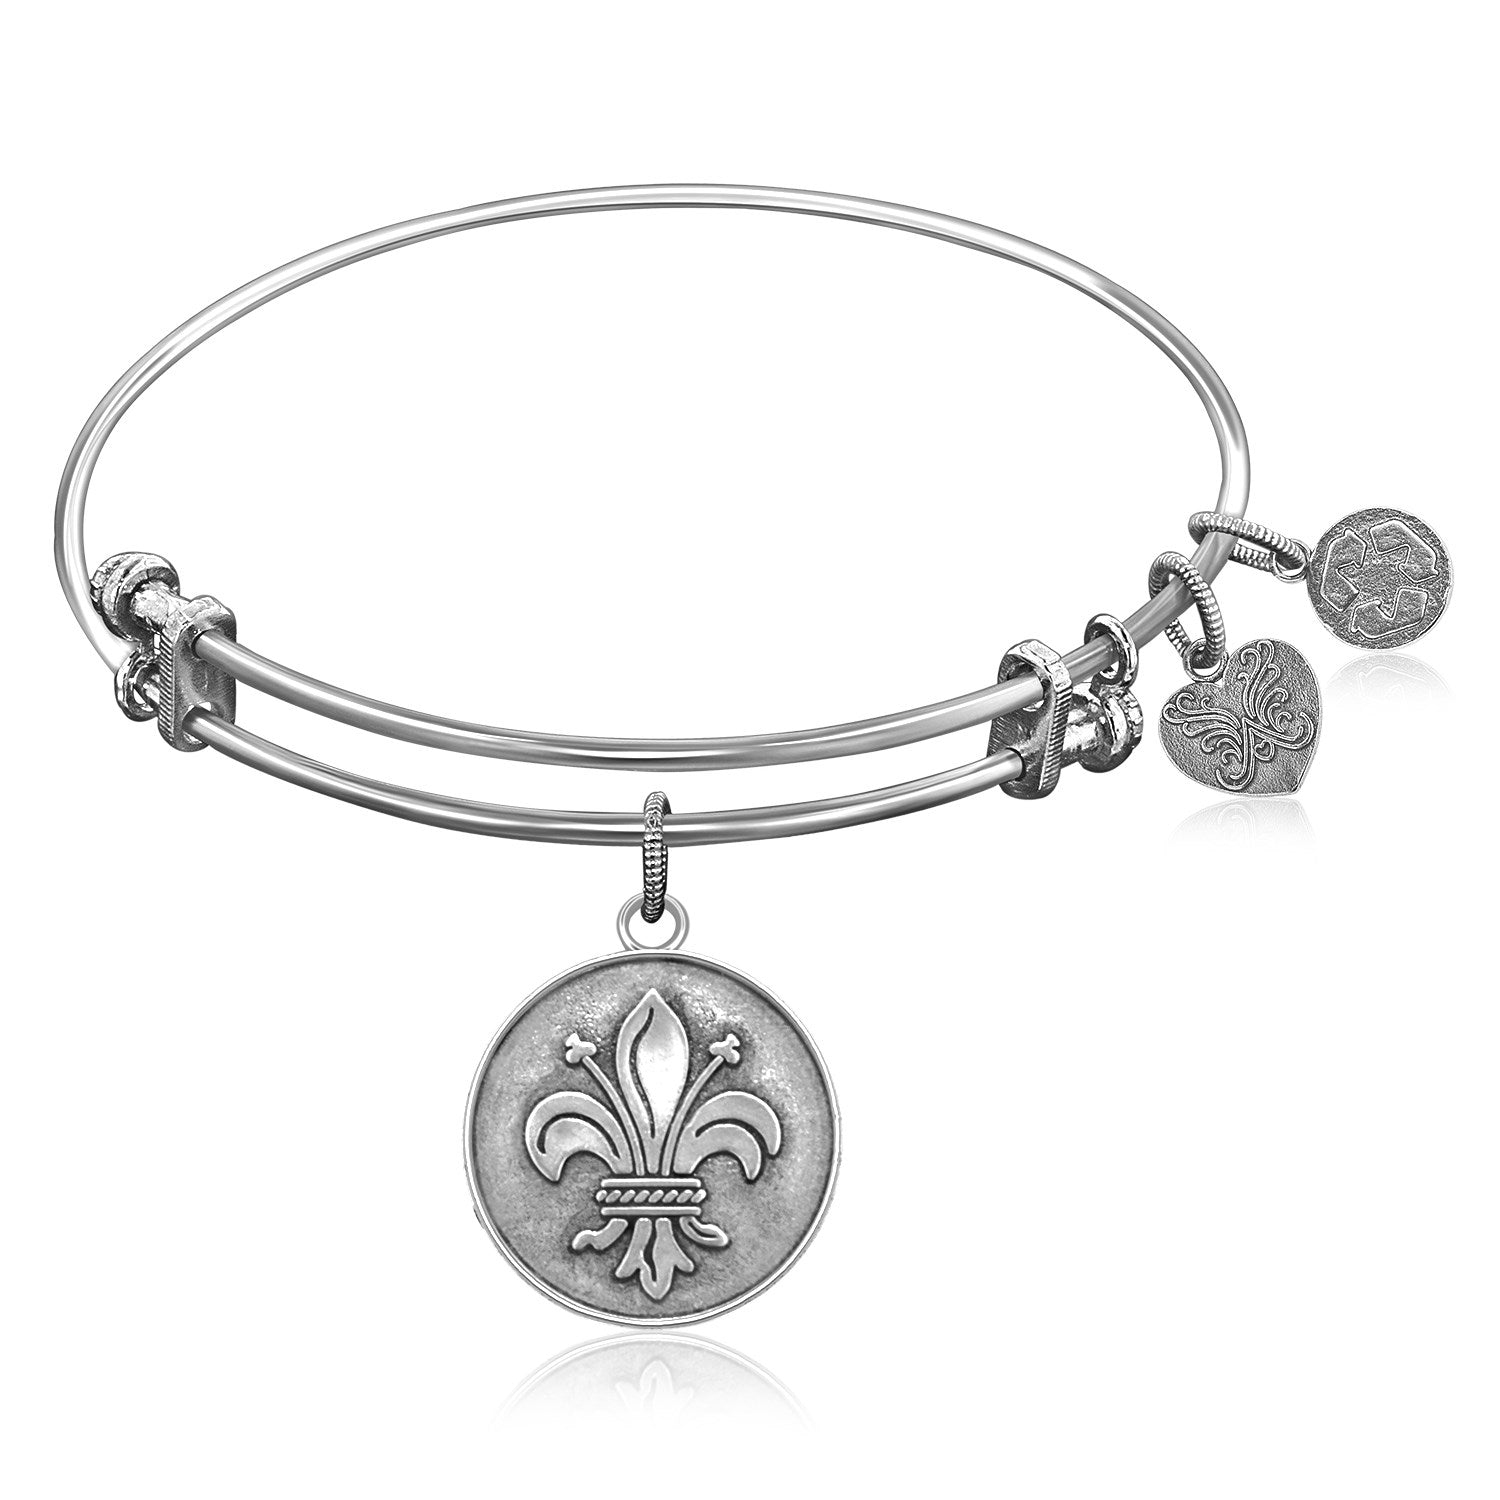 Expandable Bangle in White Tone Brass with Fleur-De-Lis Symbol